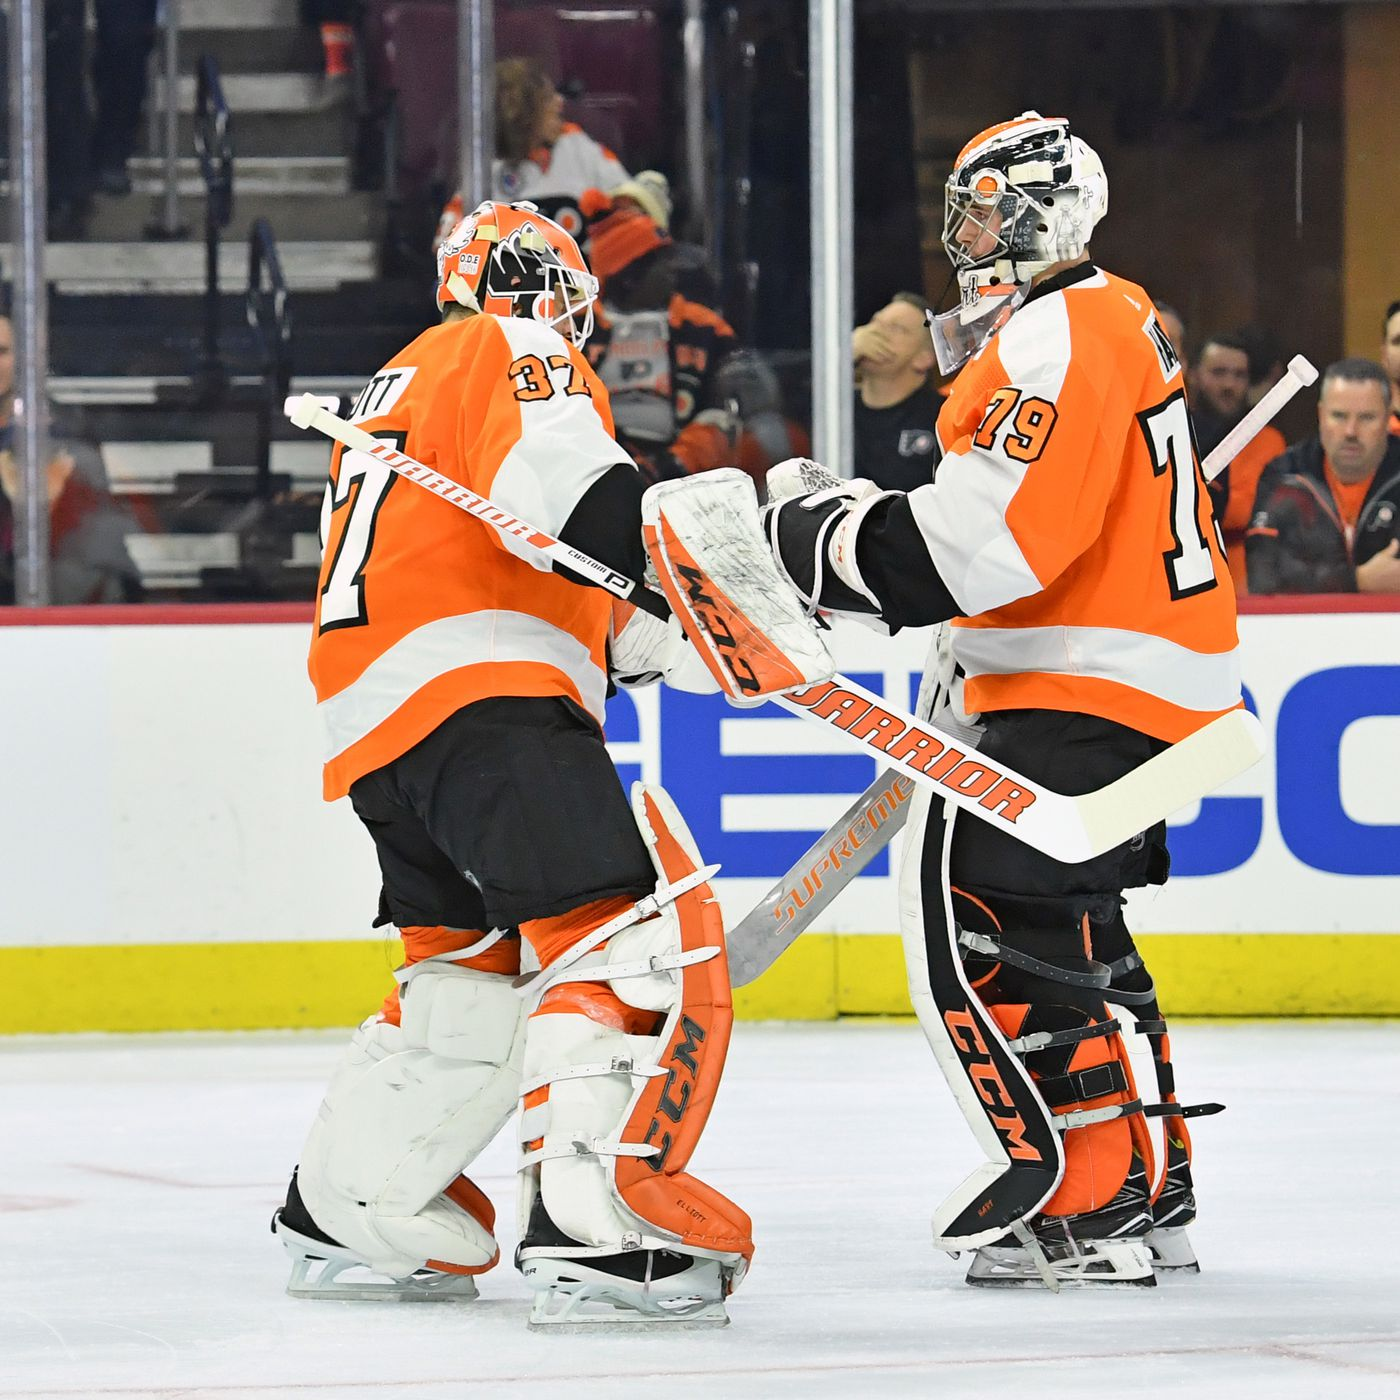 52421834 How concerning is the Flyers' goaltending situation heading into 2019-20?